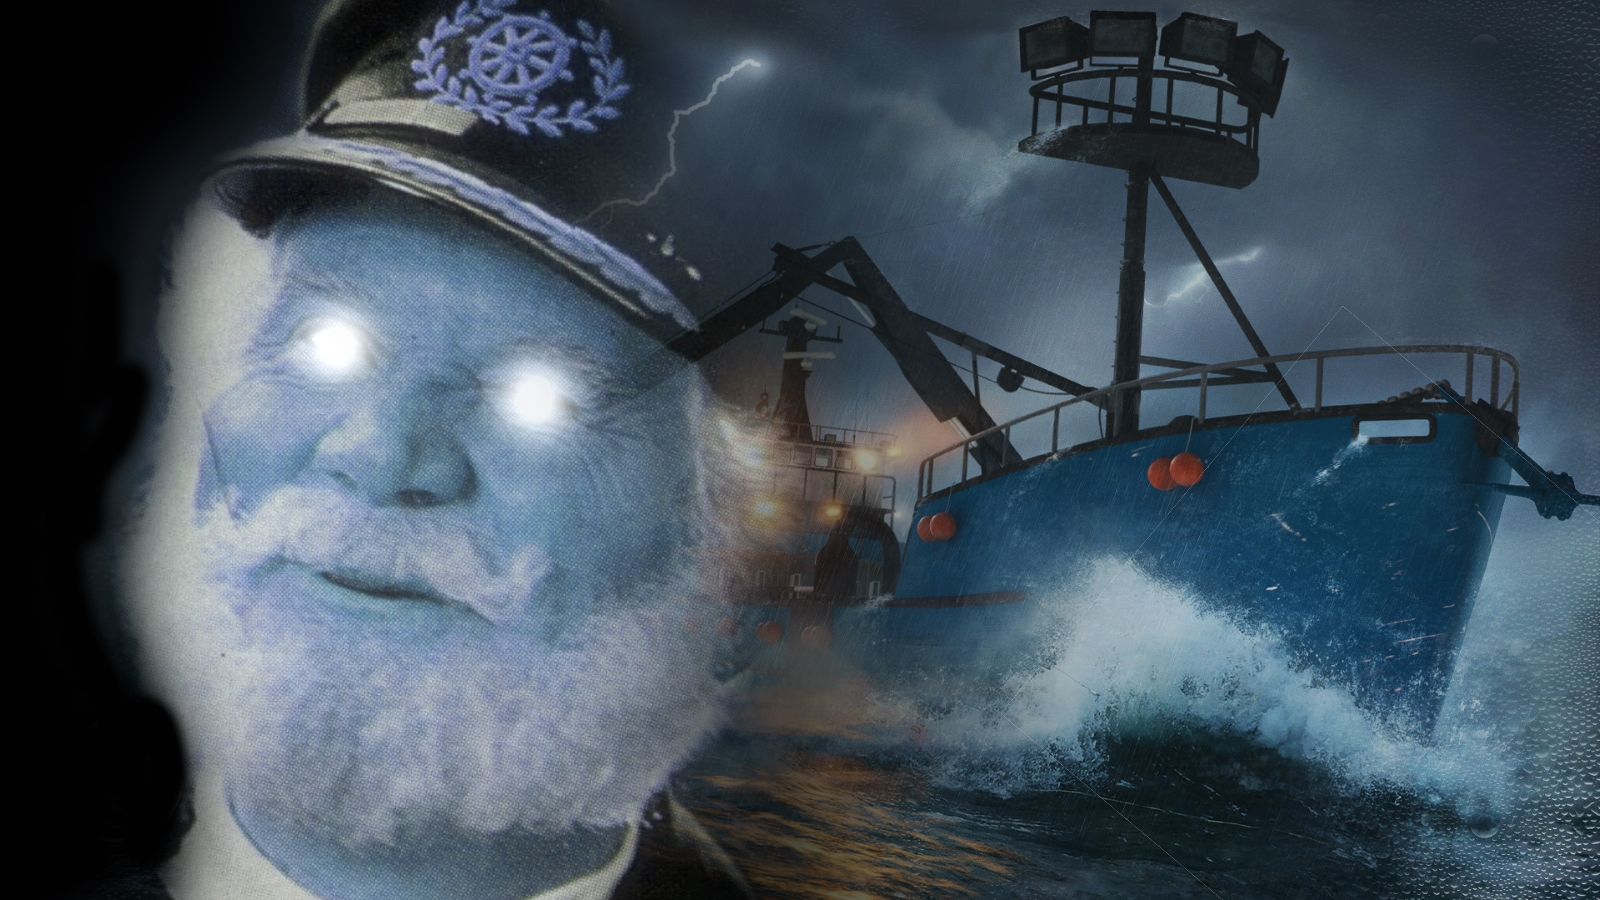 I took medical speed and played Deadliest Catch: The Game